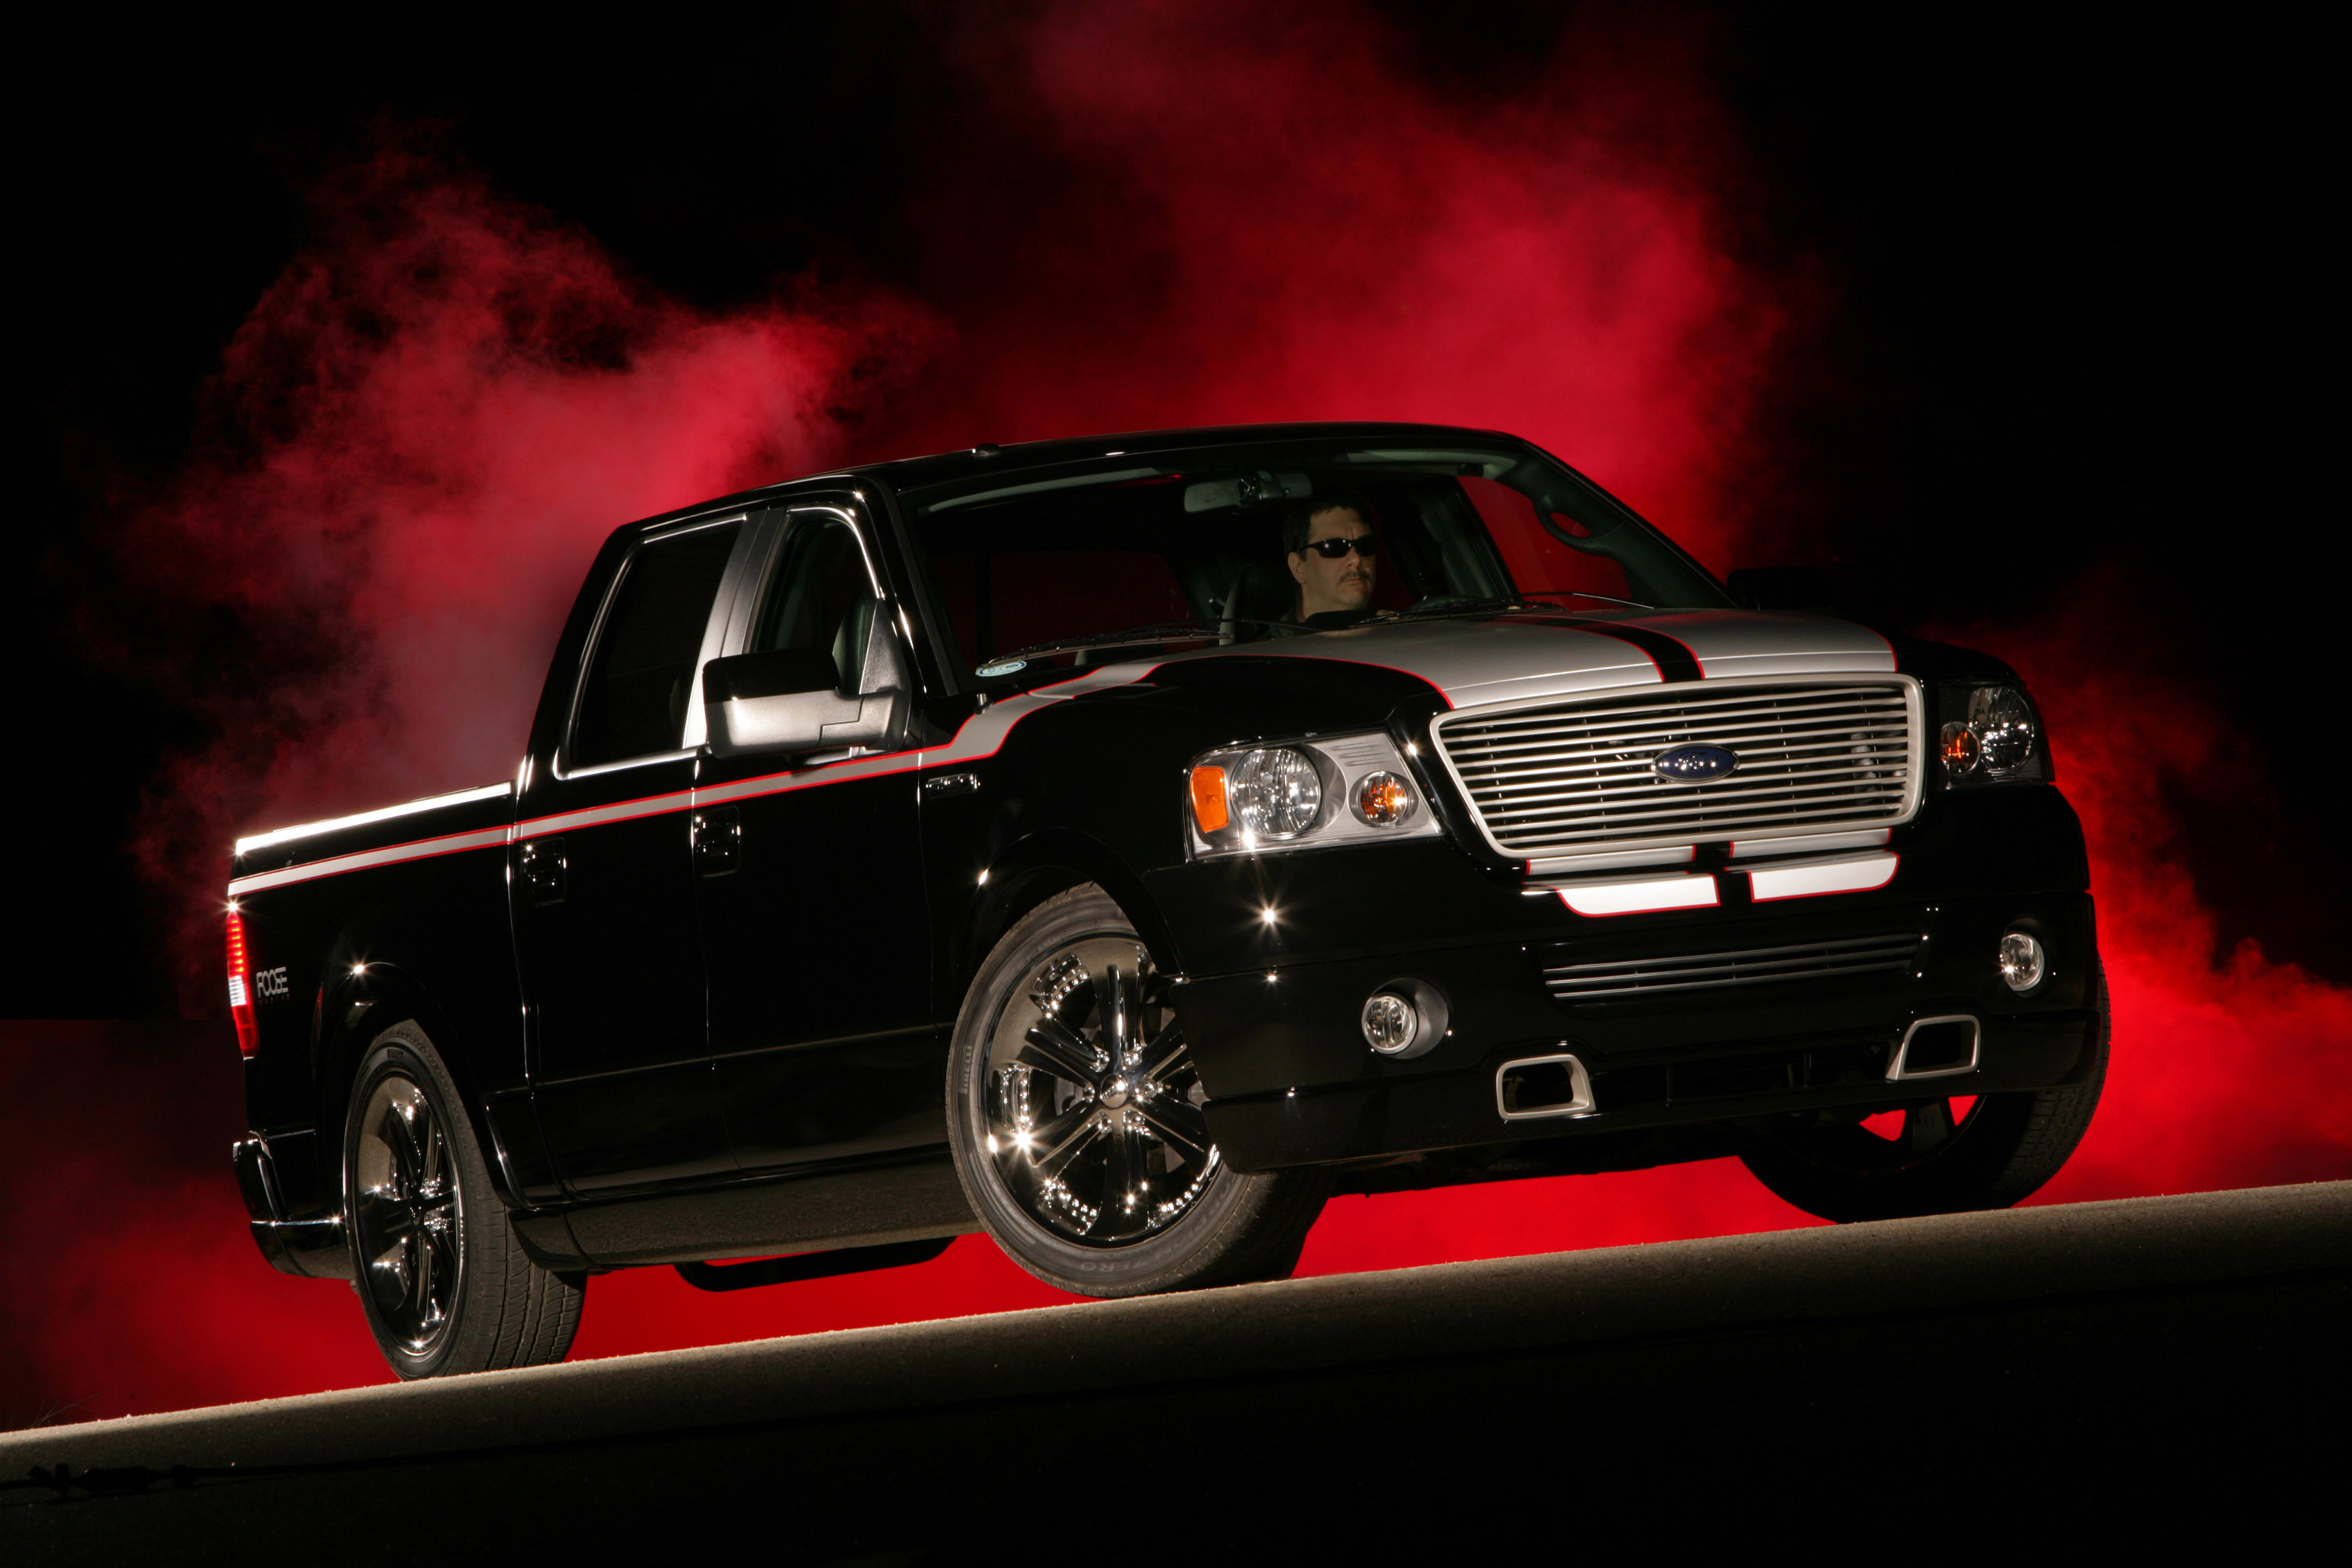 Sport Cars For Sale >> 2008 Ford F-150 Foose Edition | Top Speed